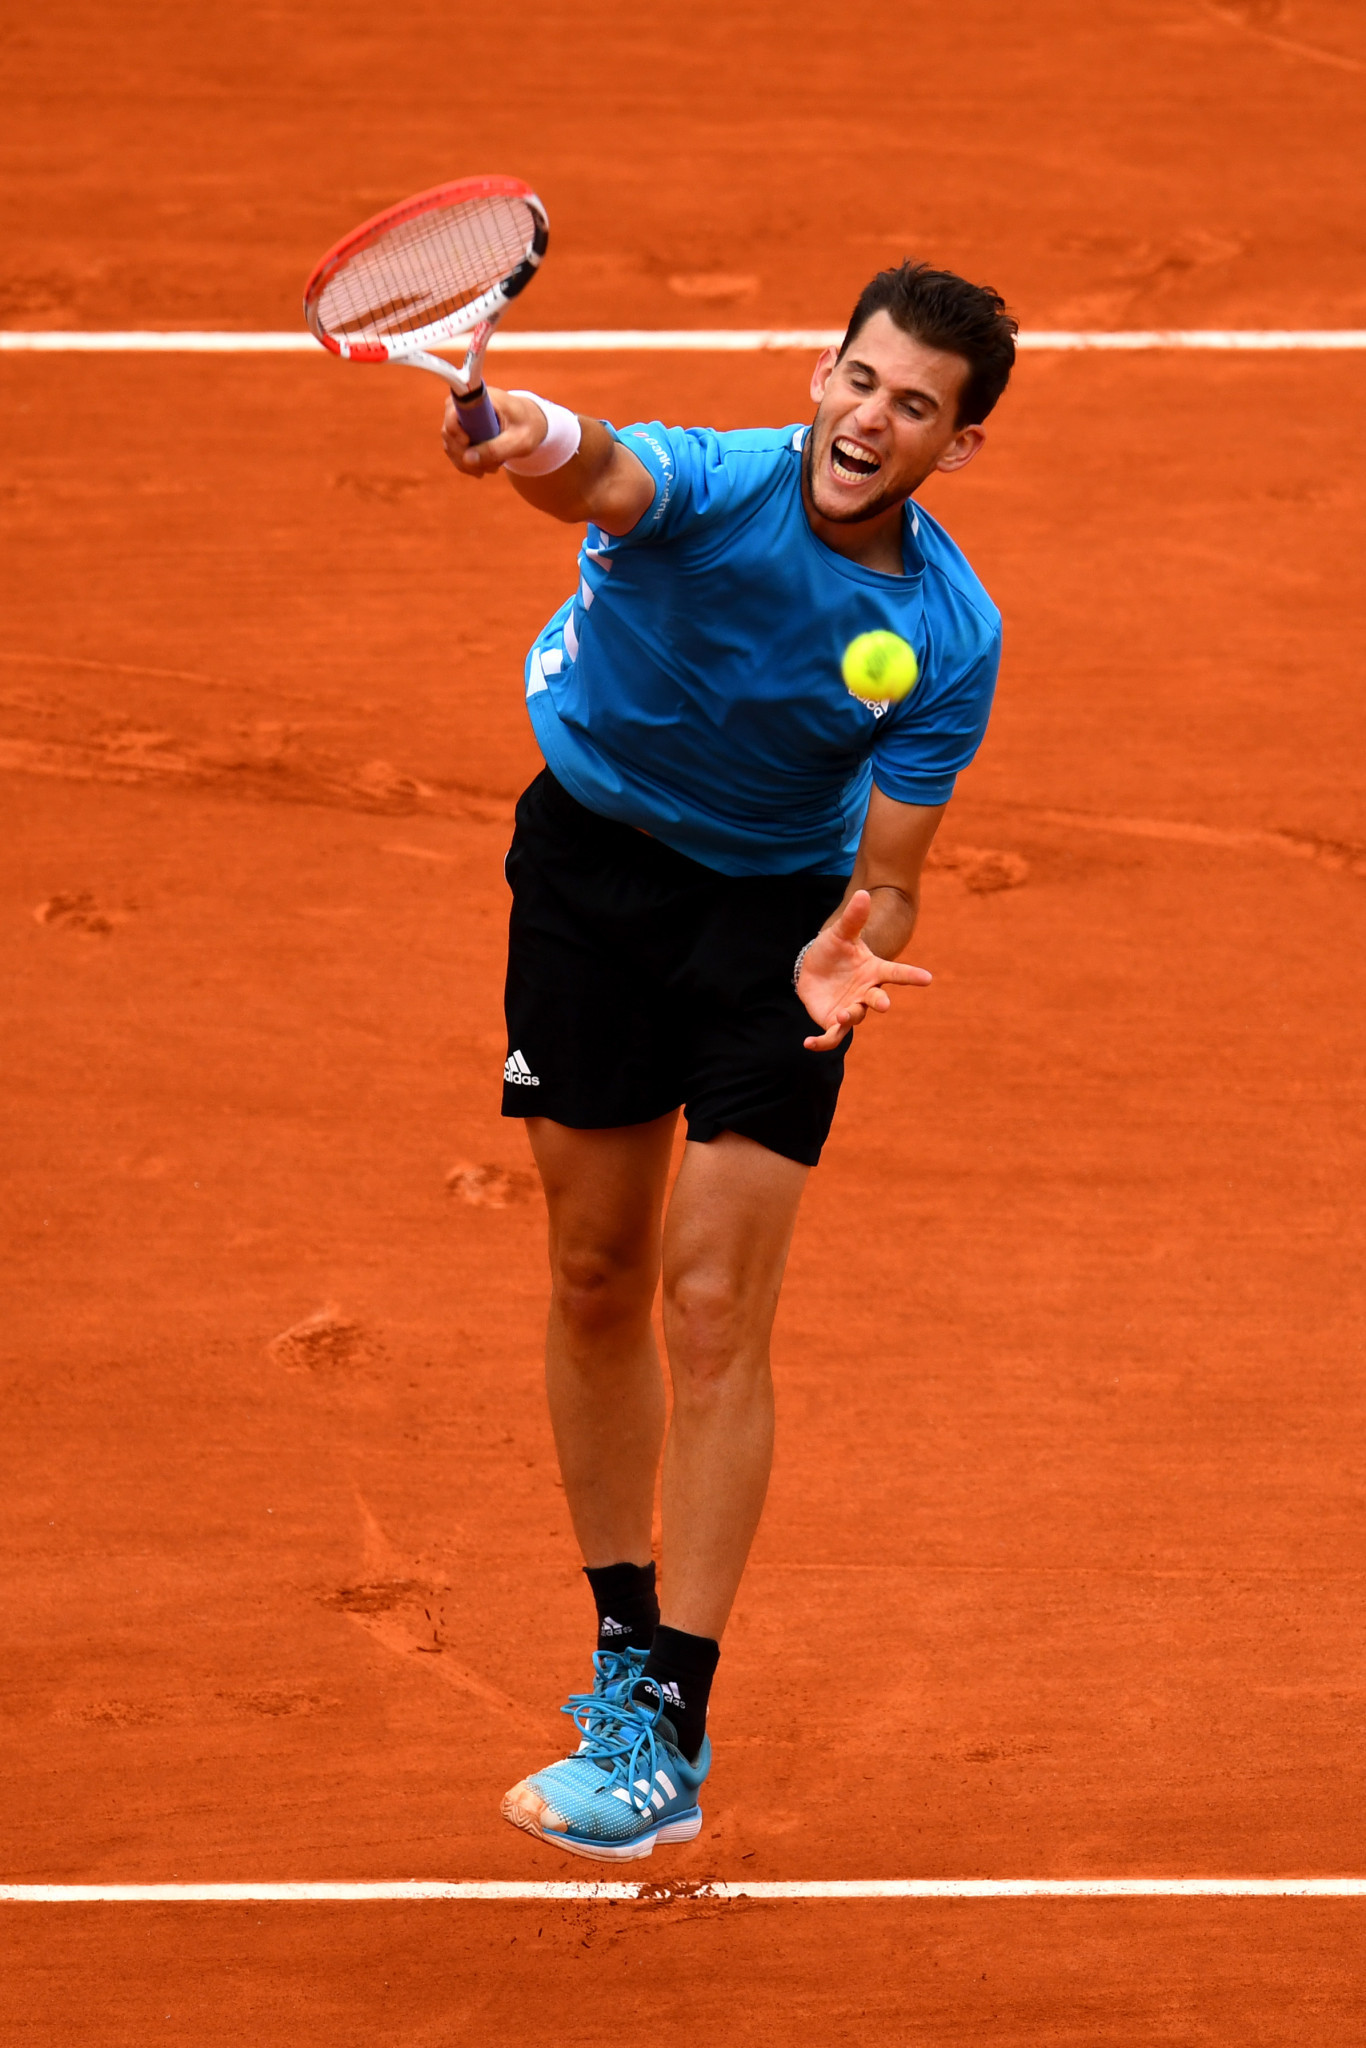 Dominic Thiem thunders down a smash during the French Open final ©Getty Images